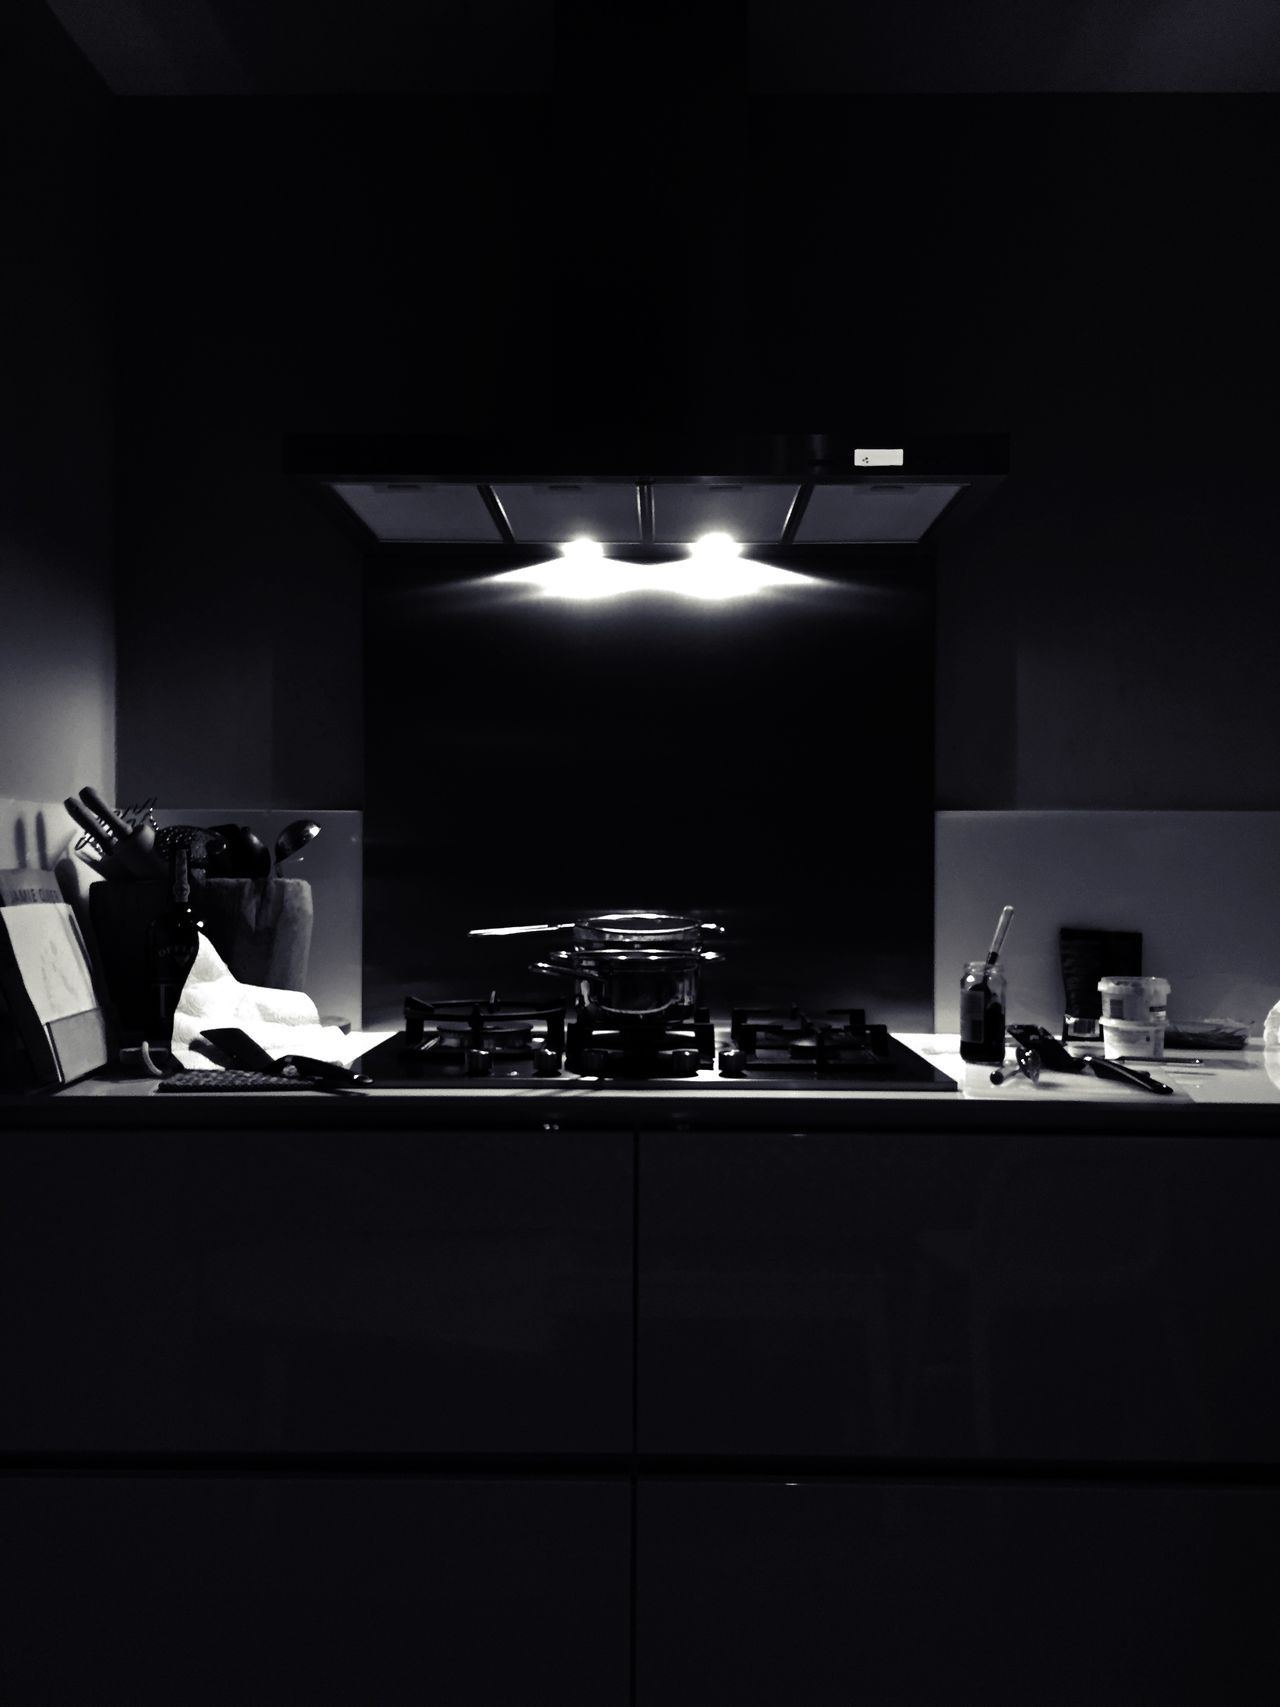 Kitchen Blackandwhite Monochrome Interior Light And Shadow